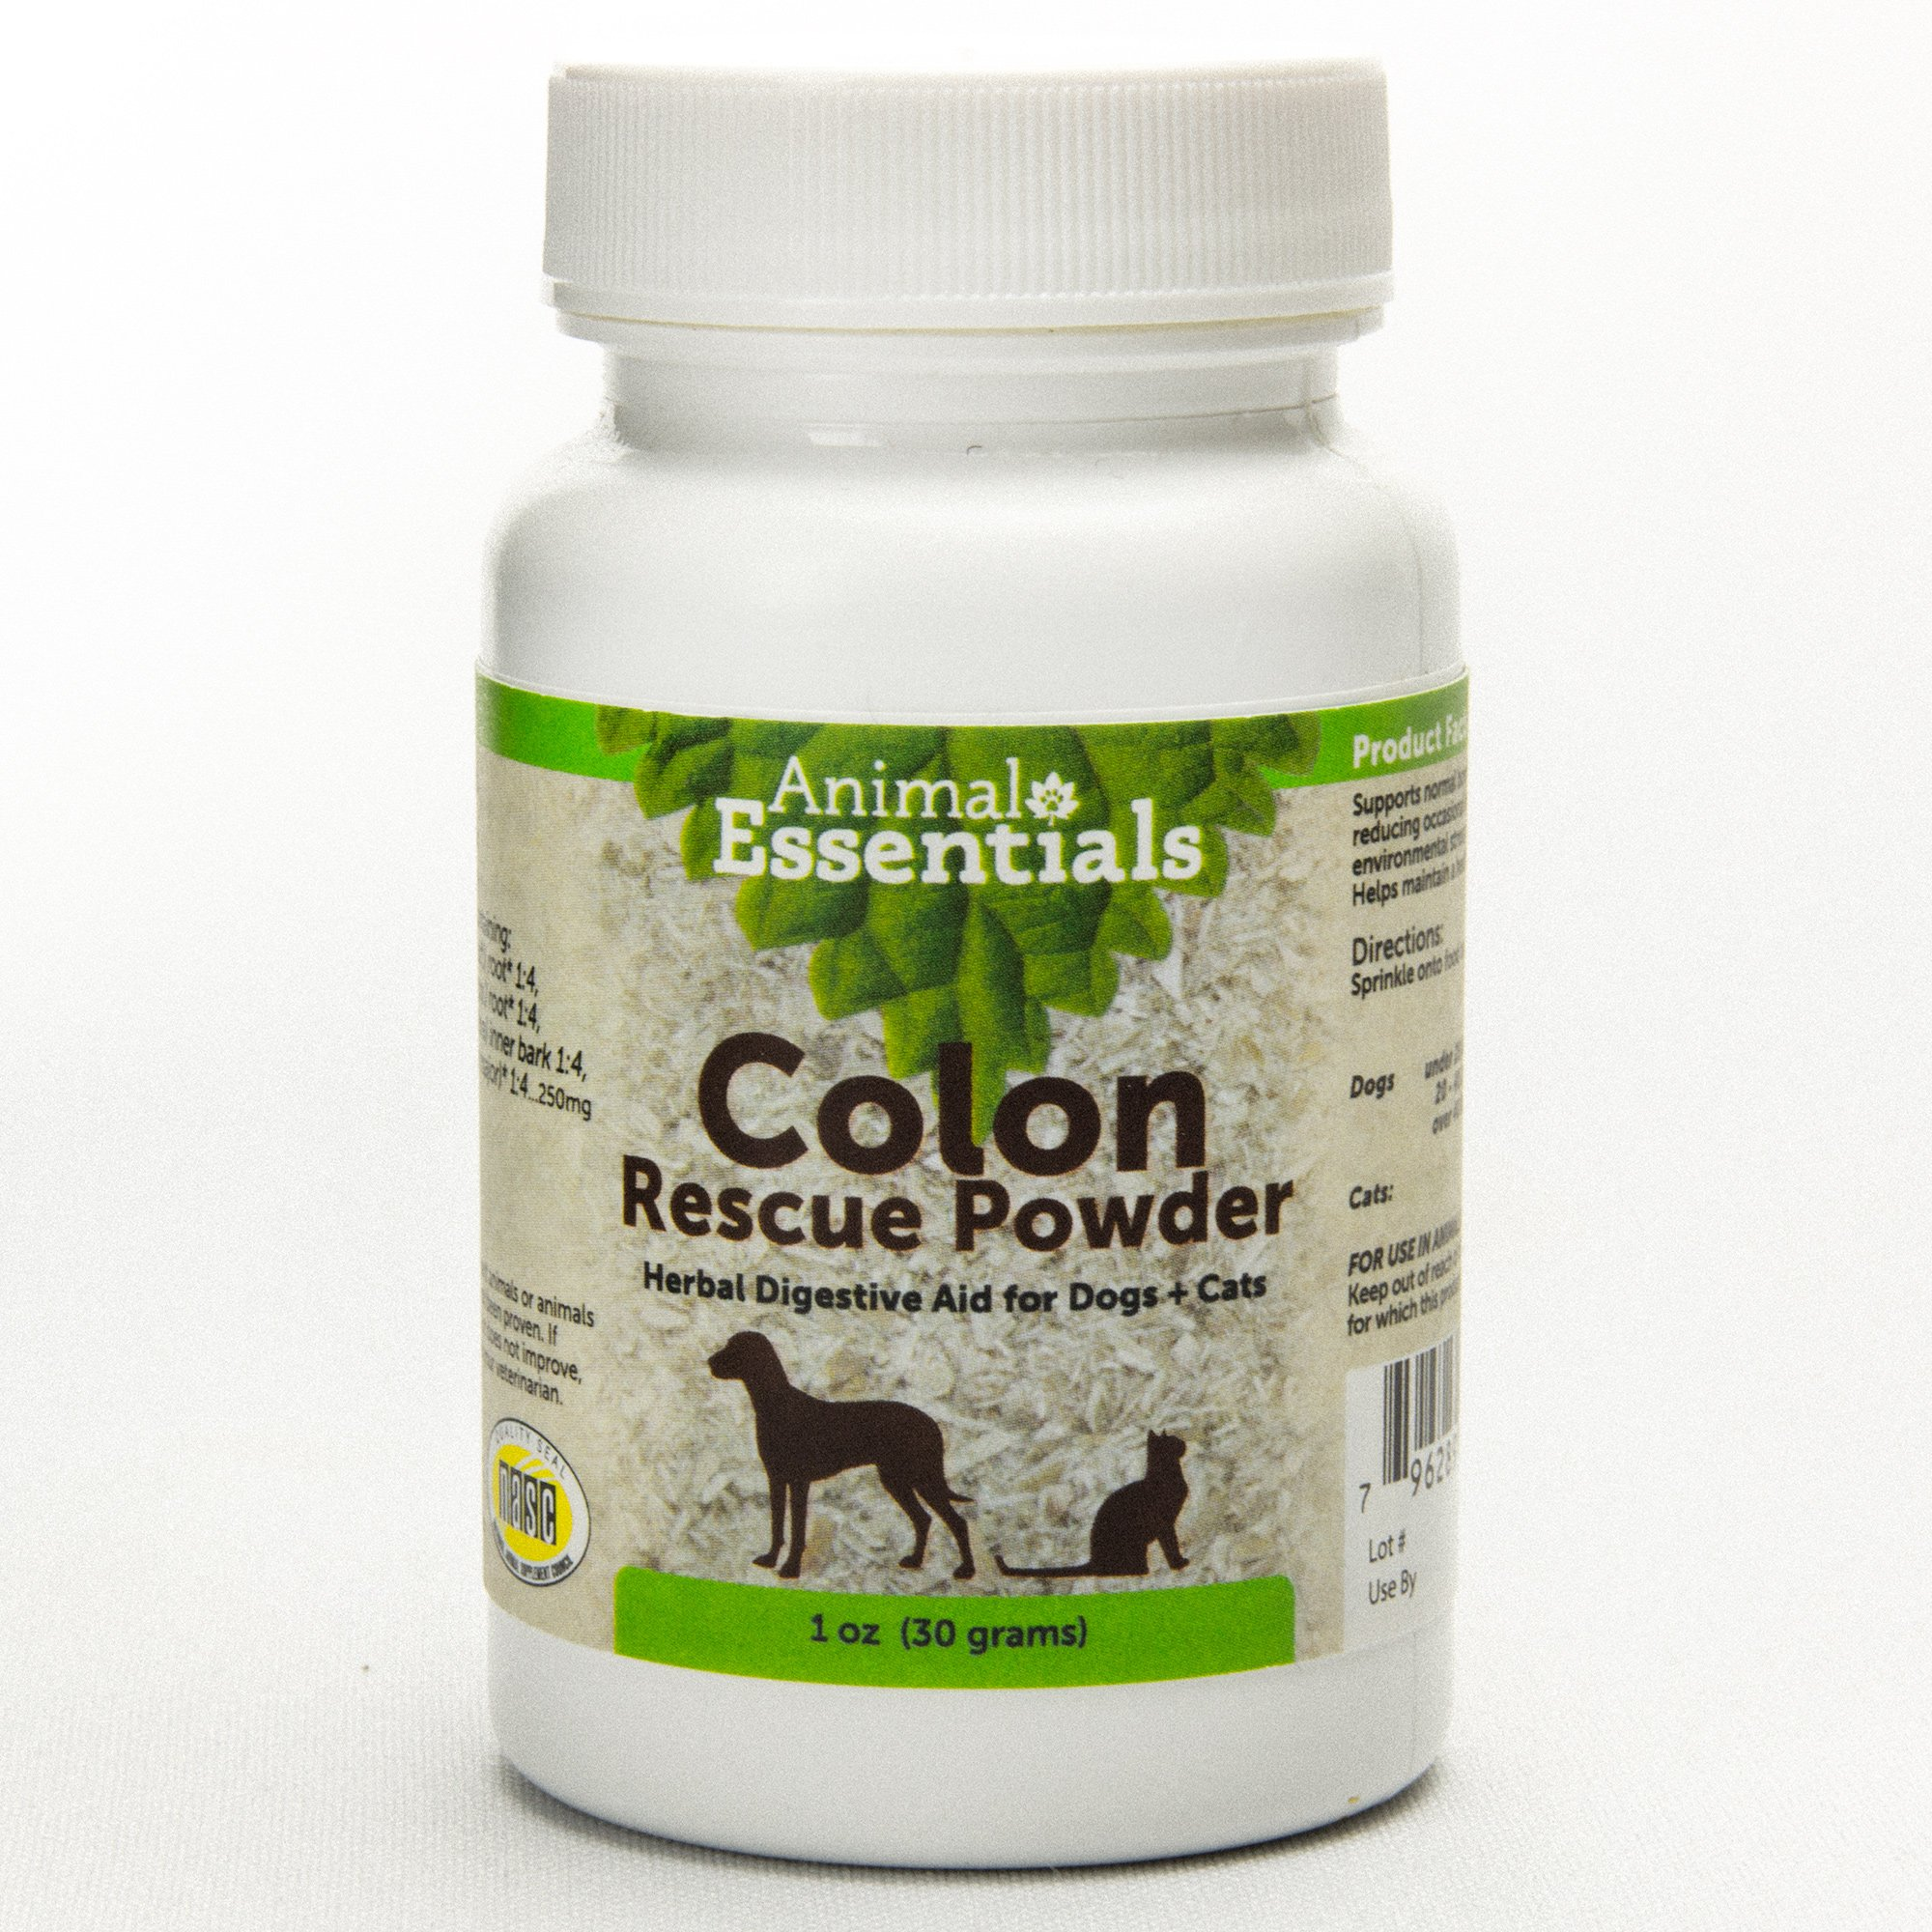 Animal Essentials Colon Rescue Powder Herbal Supplement, 30g by Animal Essentials